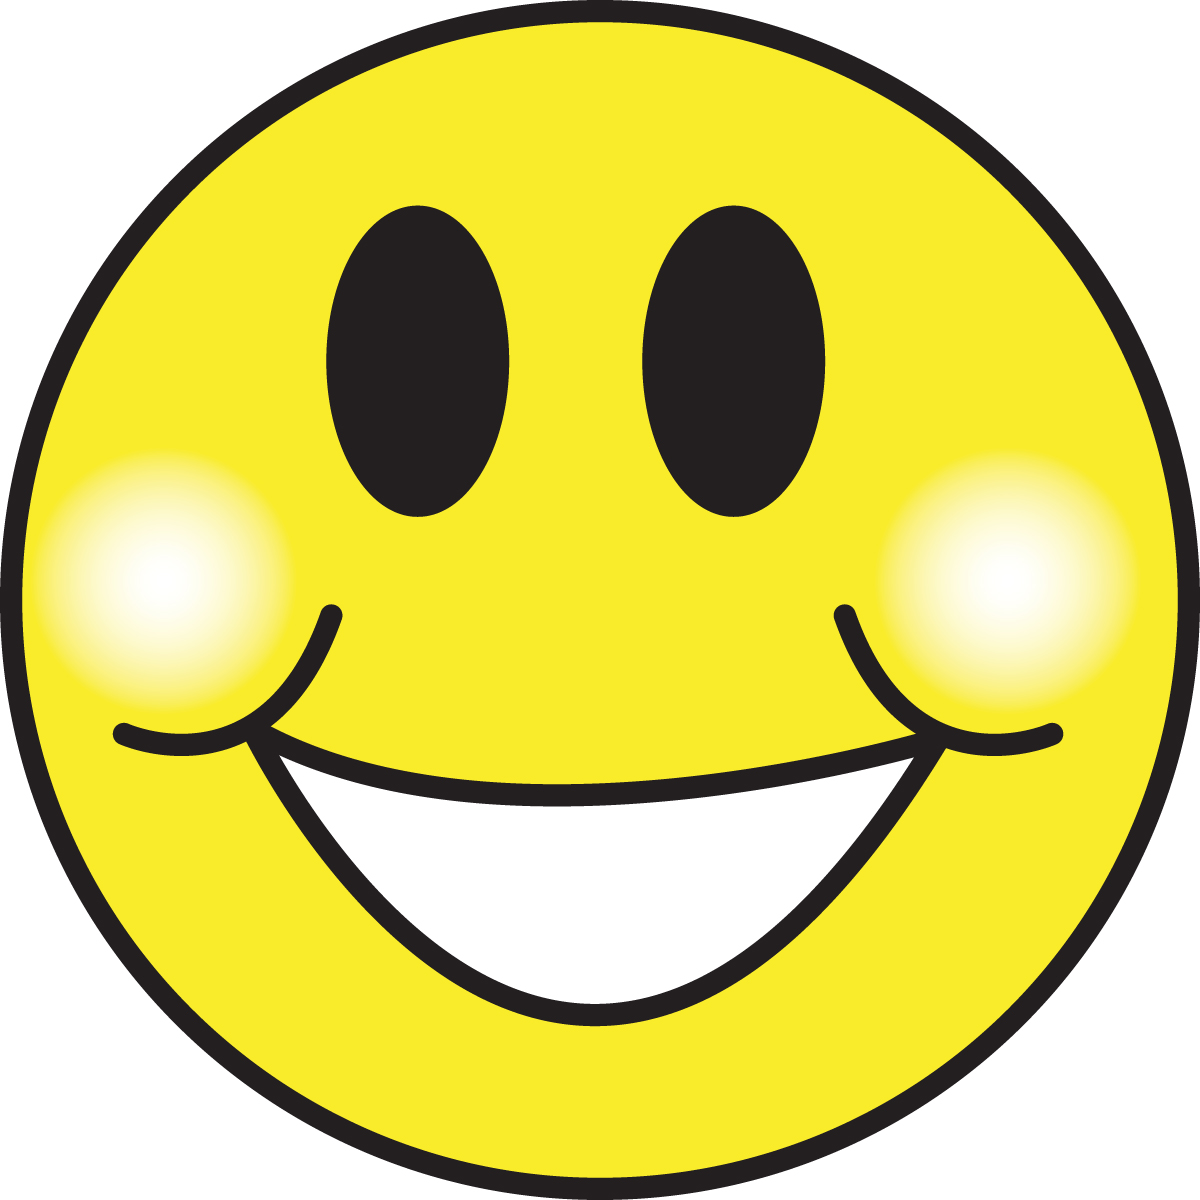 1000+ images about Smiley face